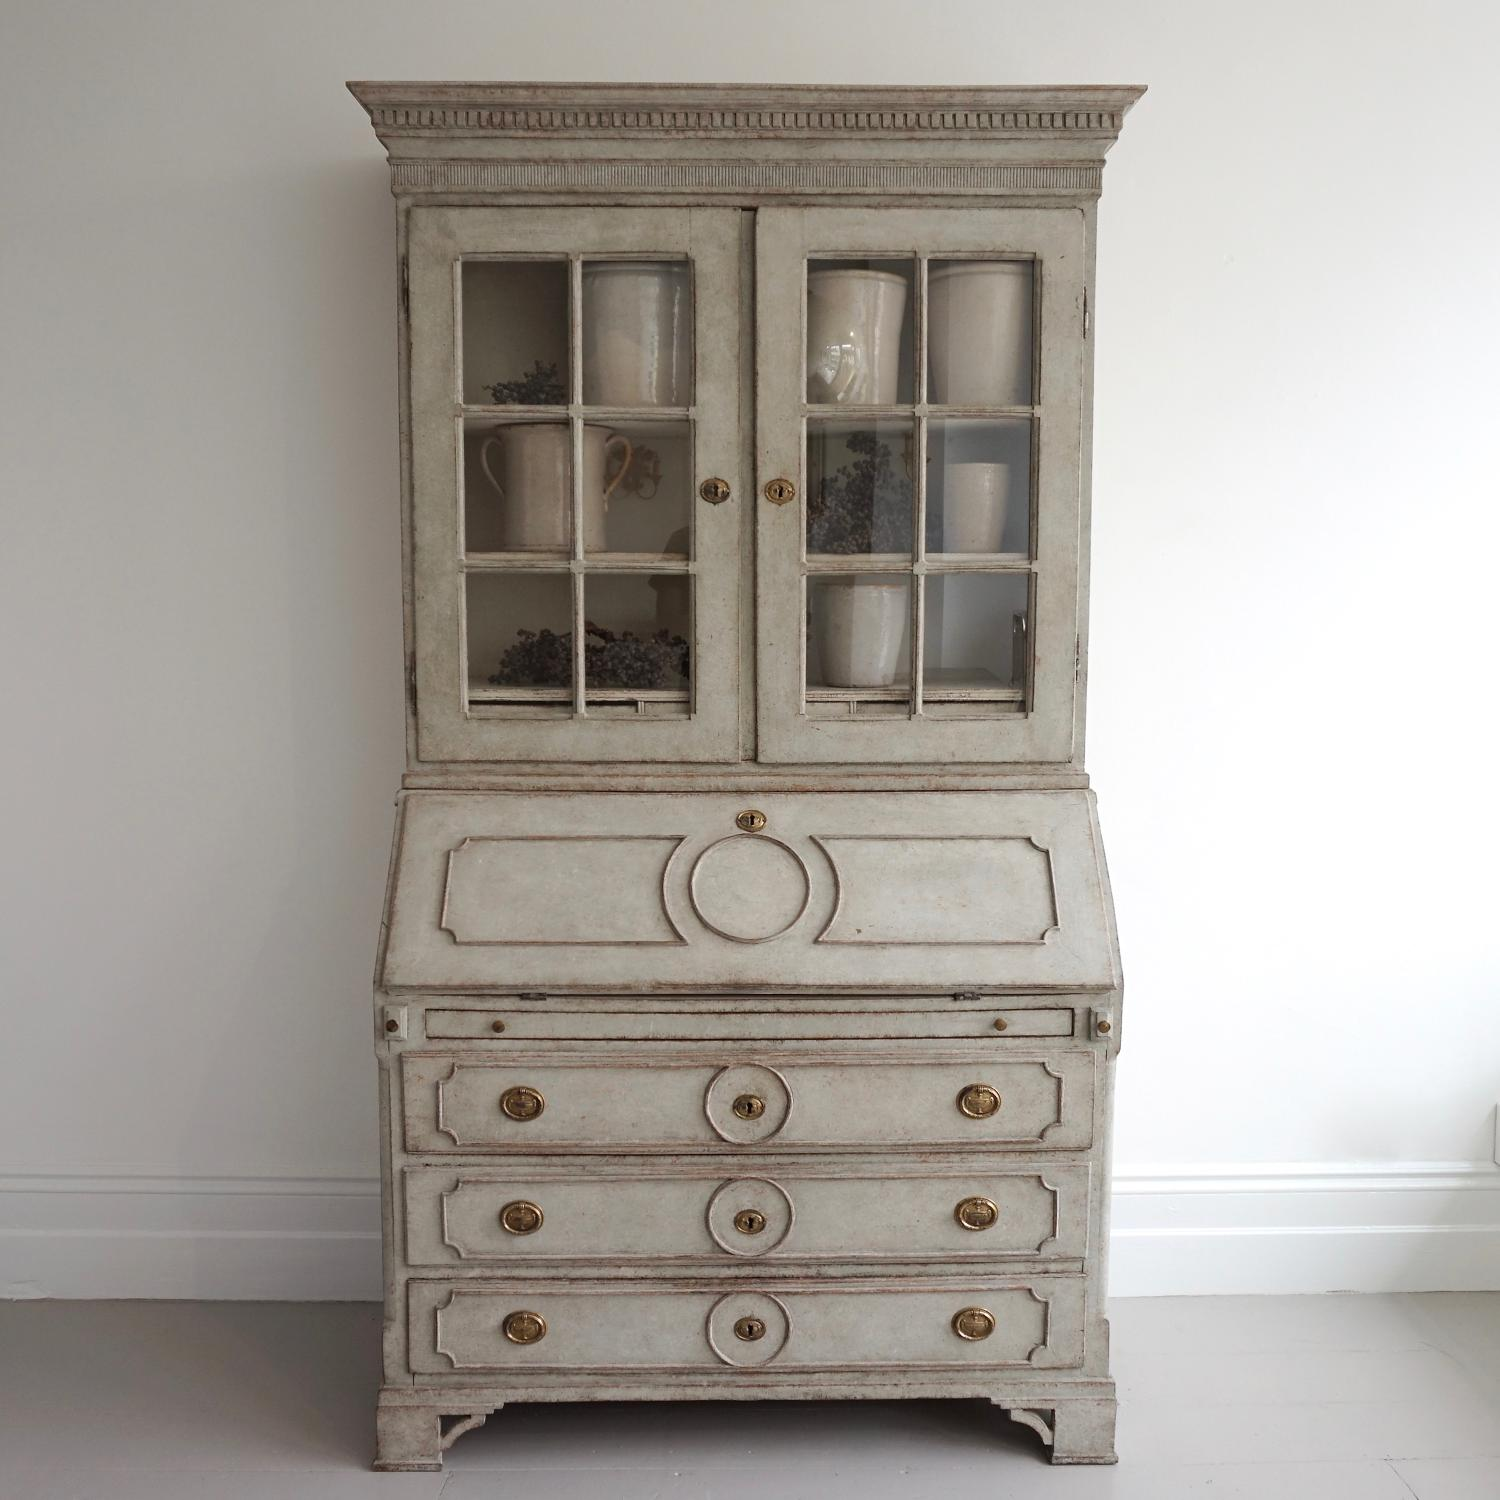 GUSTAVIAN SECRETAIRE WITH RARE GLASS VITRINE